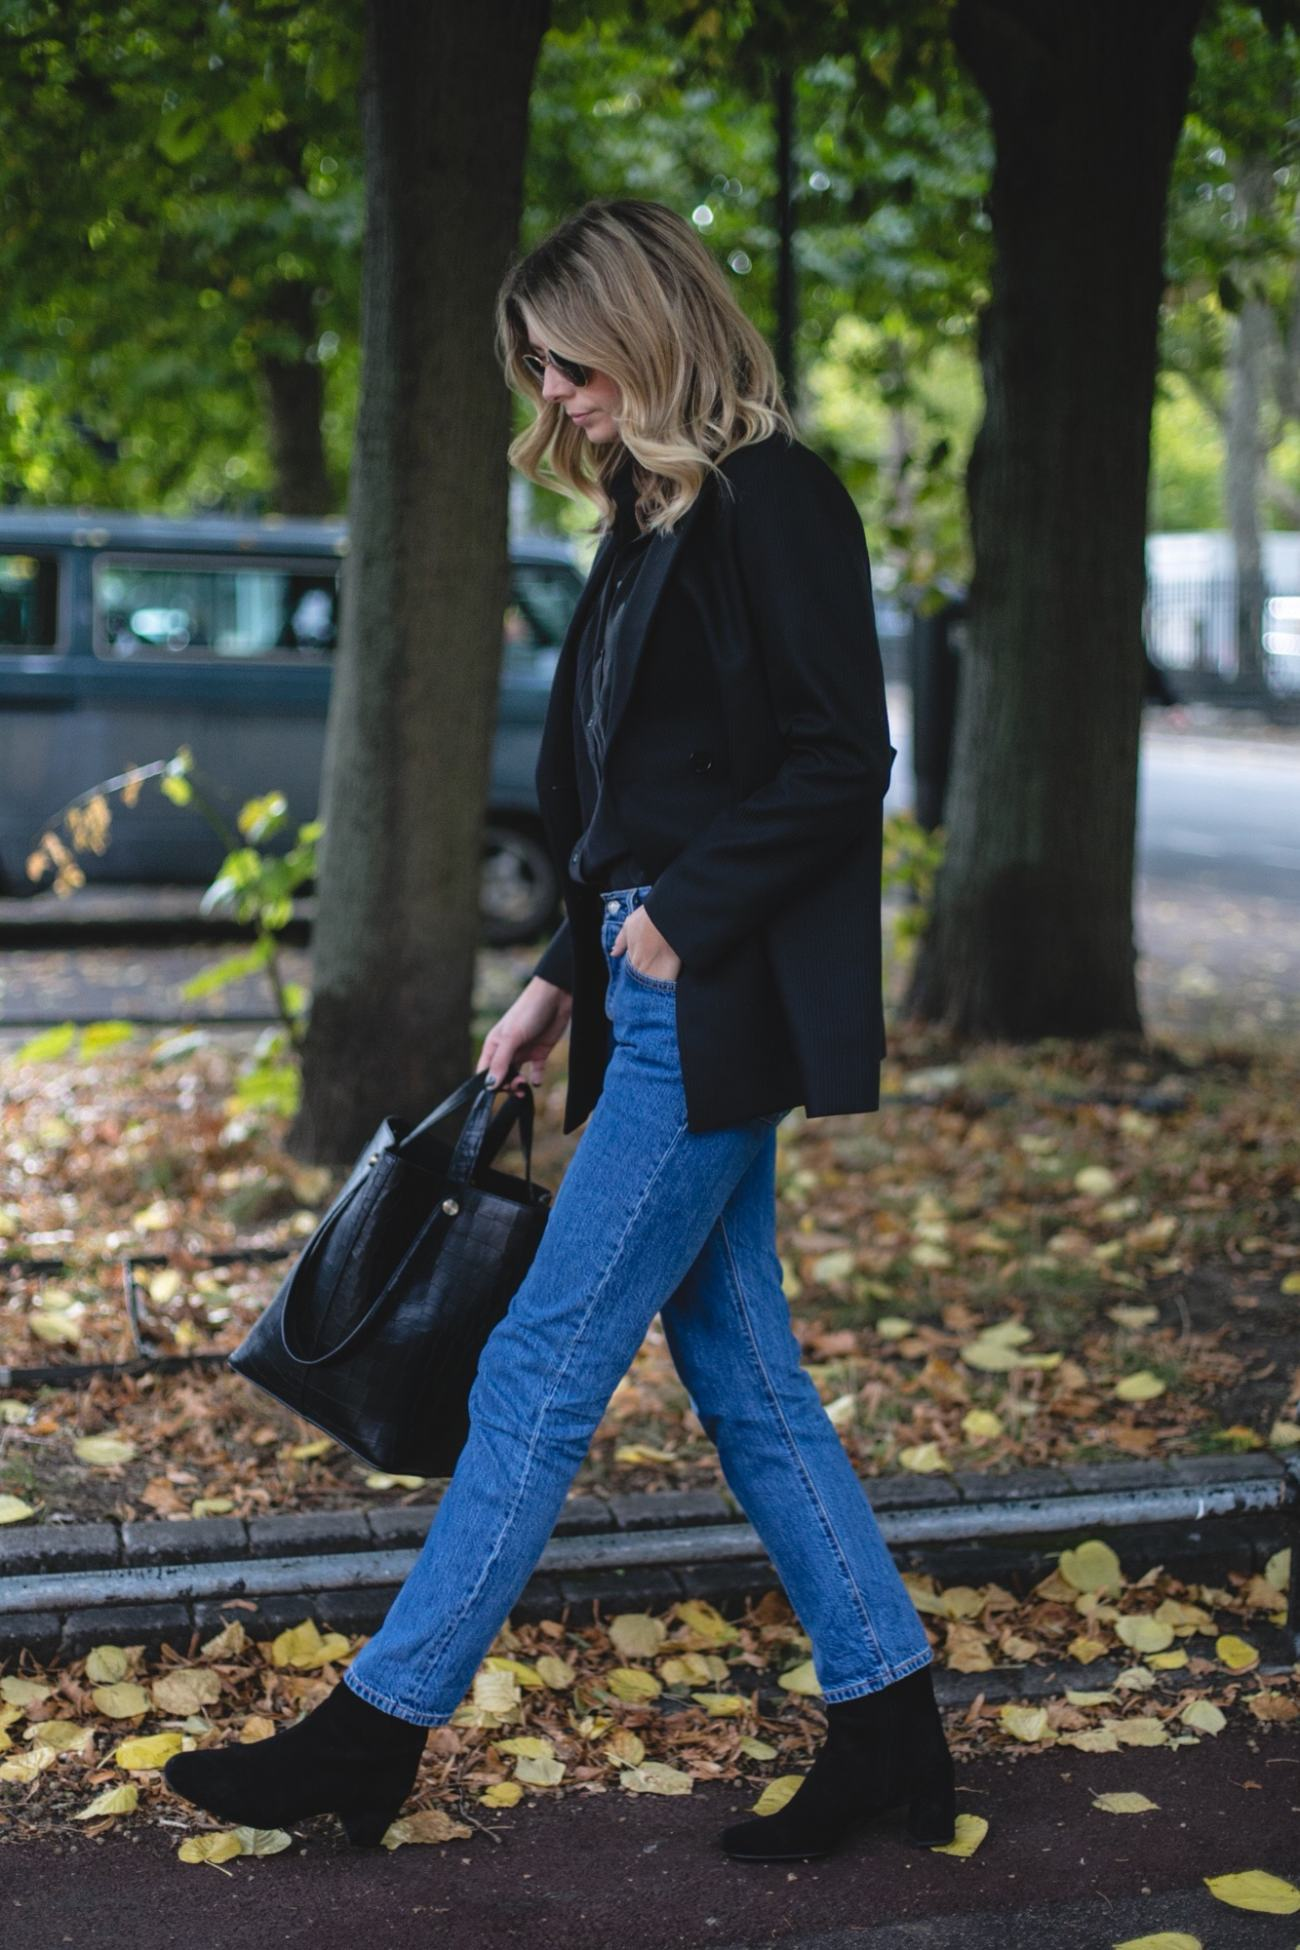 Autumn Wardrobe Staples | Emma Hill wears Sandro Blazer, silk shirt, Levis 501 CT jeans, Prada ankle boots, Mulberry Kite tote bag, chic fall outfit